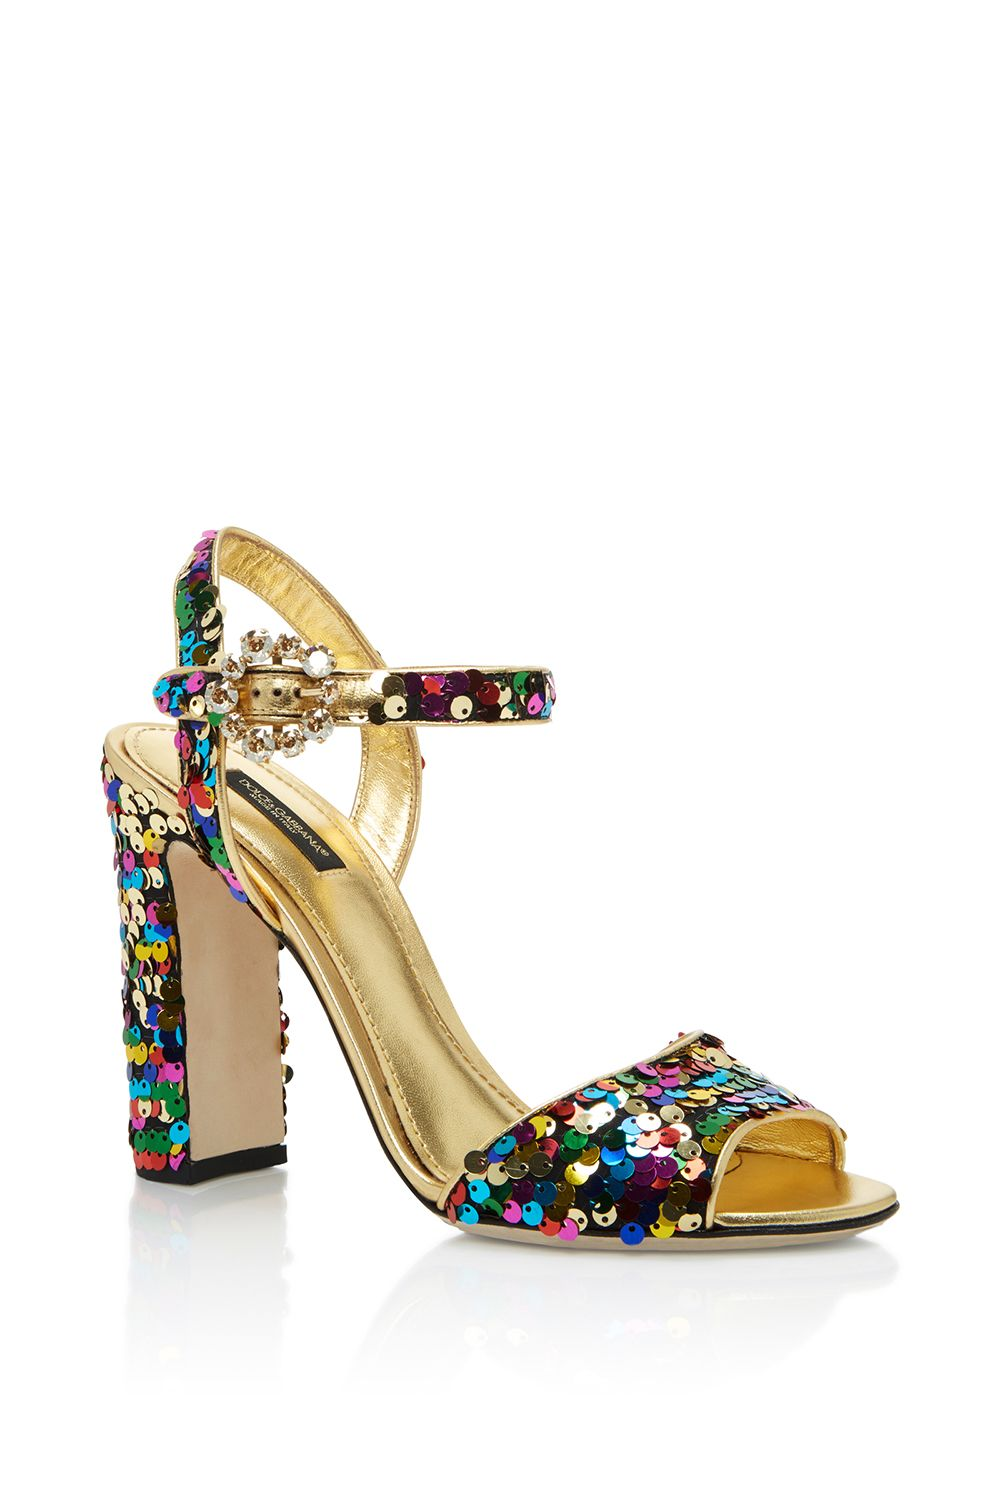 "<p>Because every must have holiday party shoe should come wrapped in sequins and gold. </p><p>$945, <a href=""https://www.modaoperandi.com/dolce-gabbana-ss17/sequin-pumps"" data-tracking-id=""recirc-text-link"">modaoperandi.com</a>.</p>"